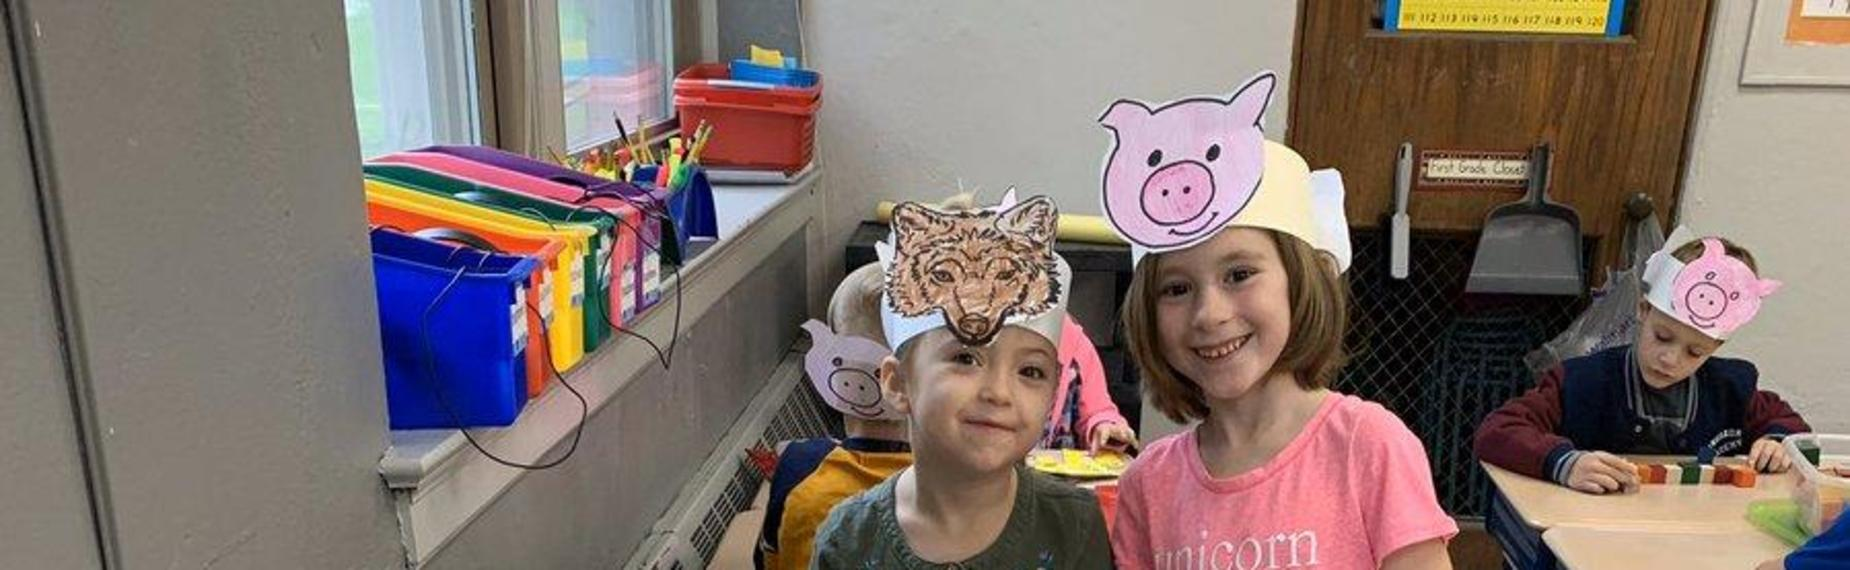 The Three Little pigs - 1st grade students